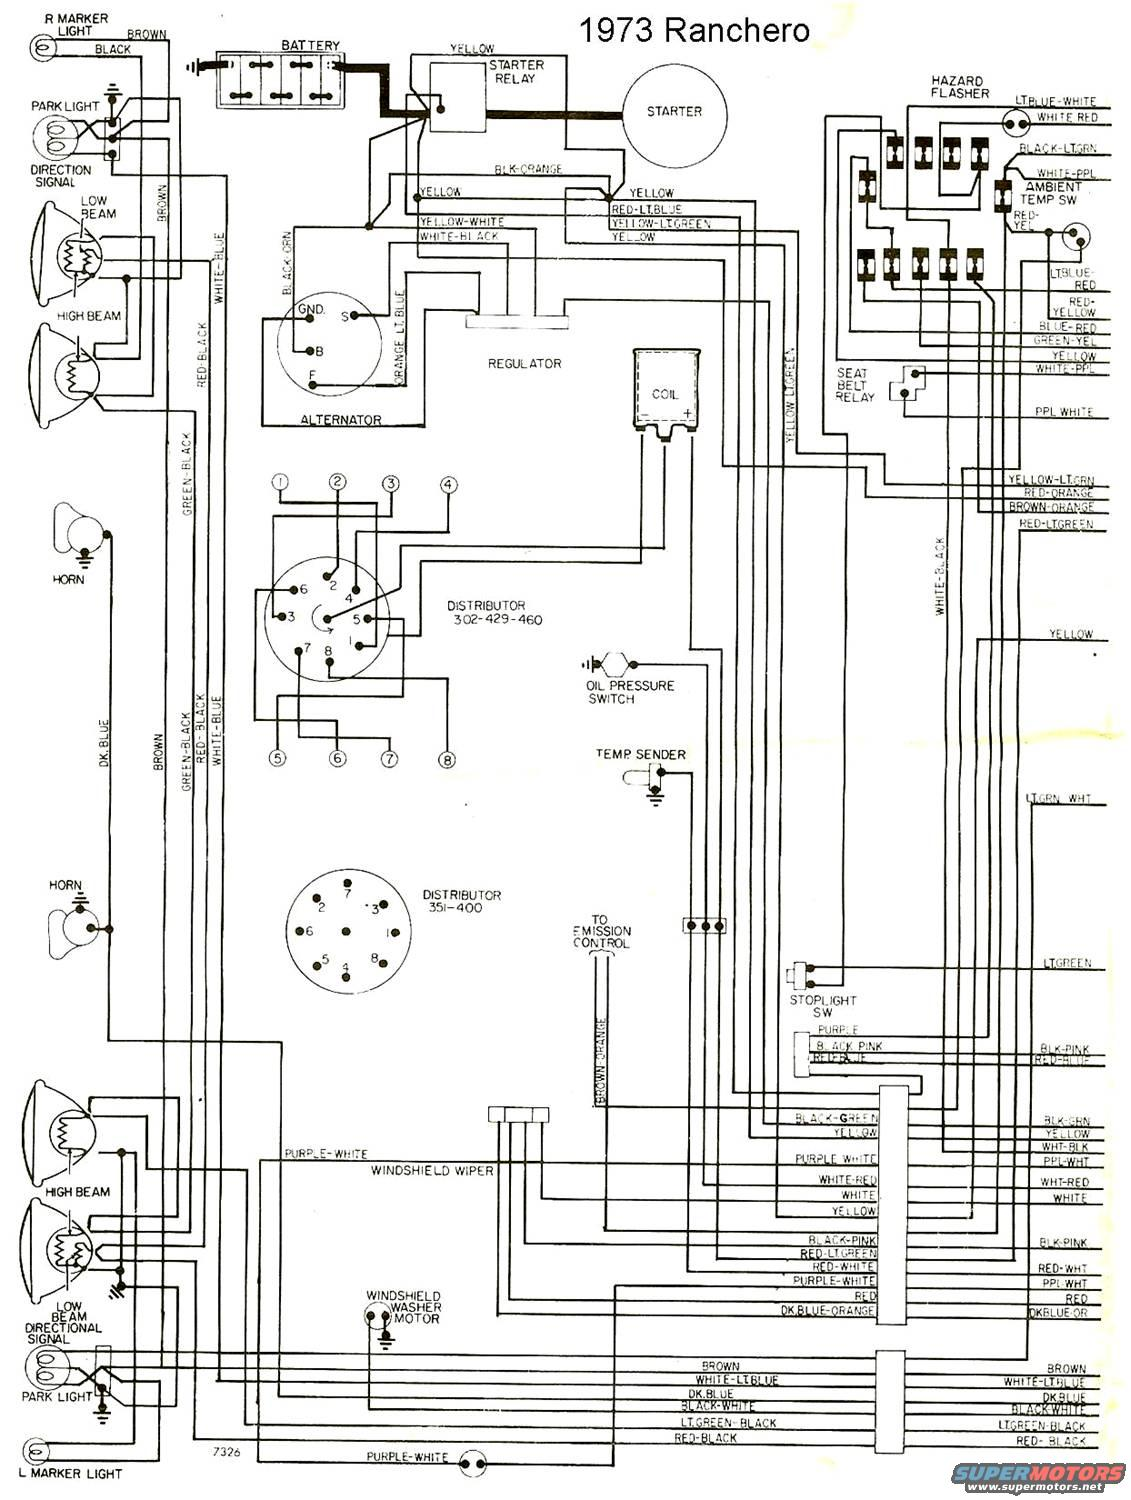 1973 nova wiper wiring diagram 1974 nova wiper wiring diagram get image about wiring diagram el camino wiring diagram 1967 get